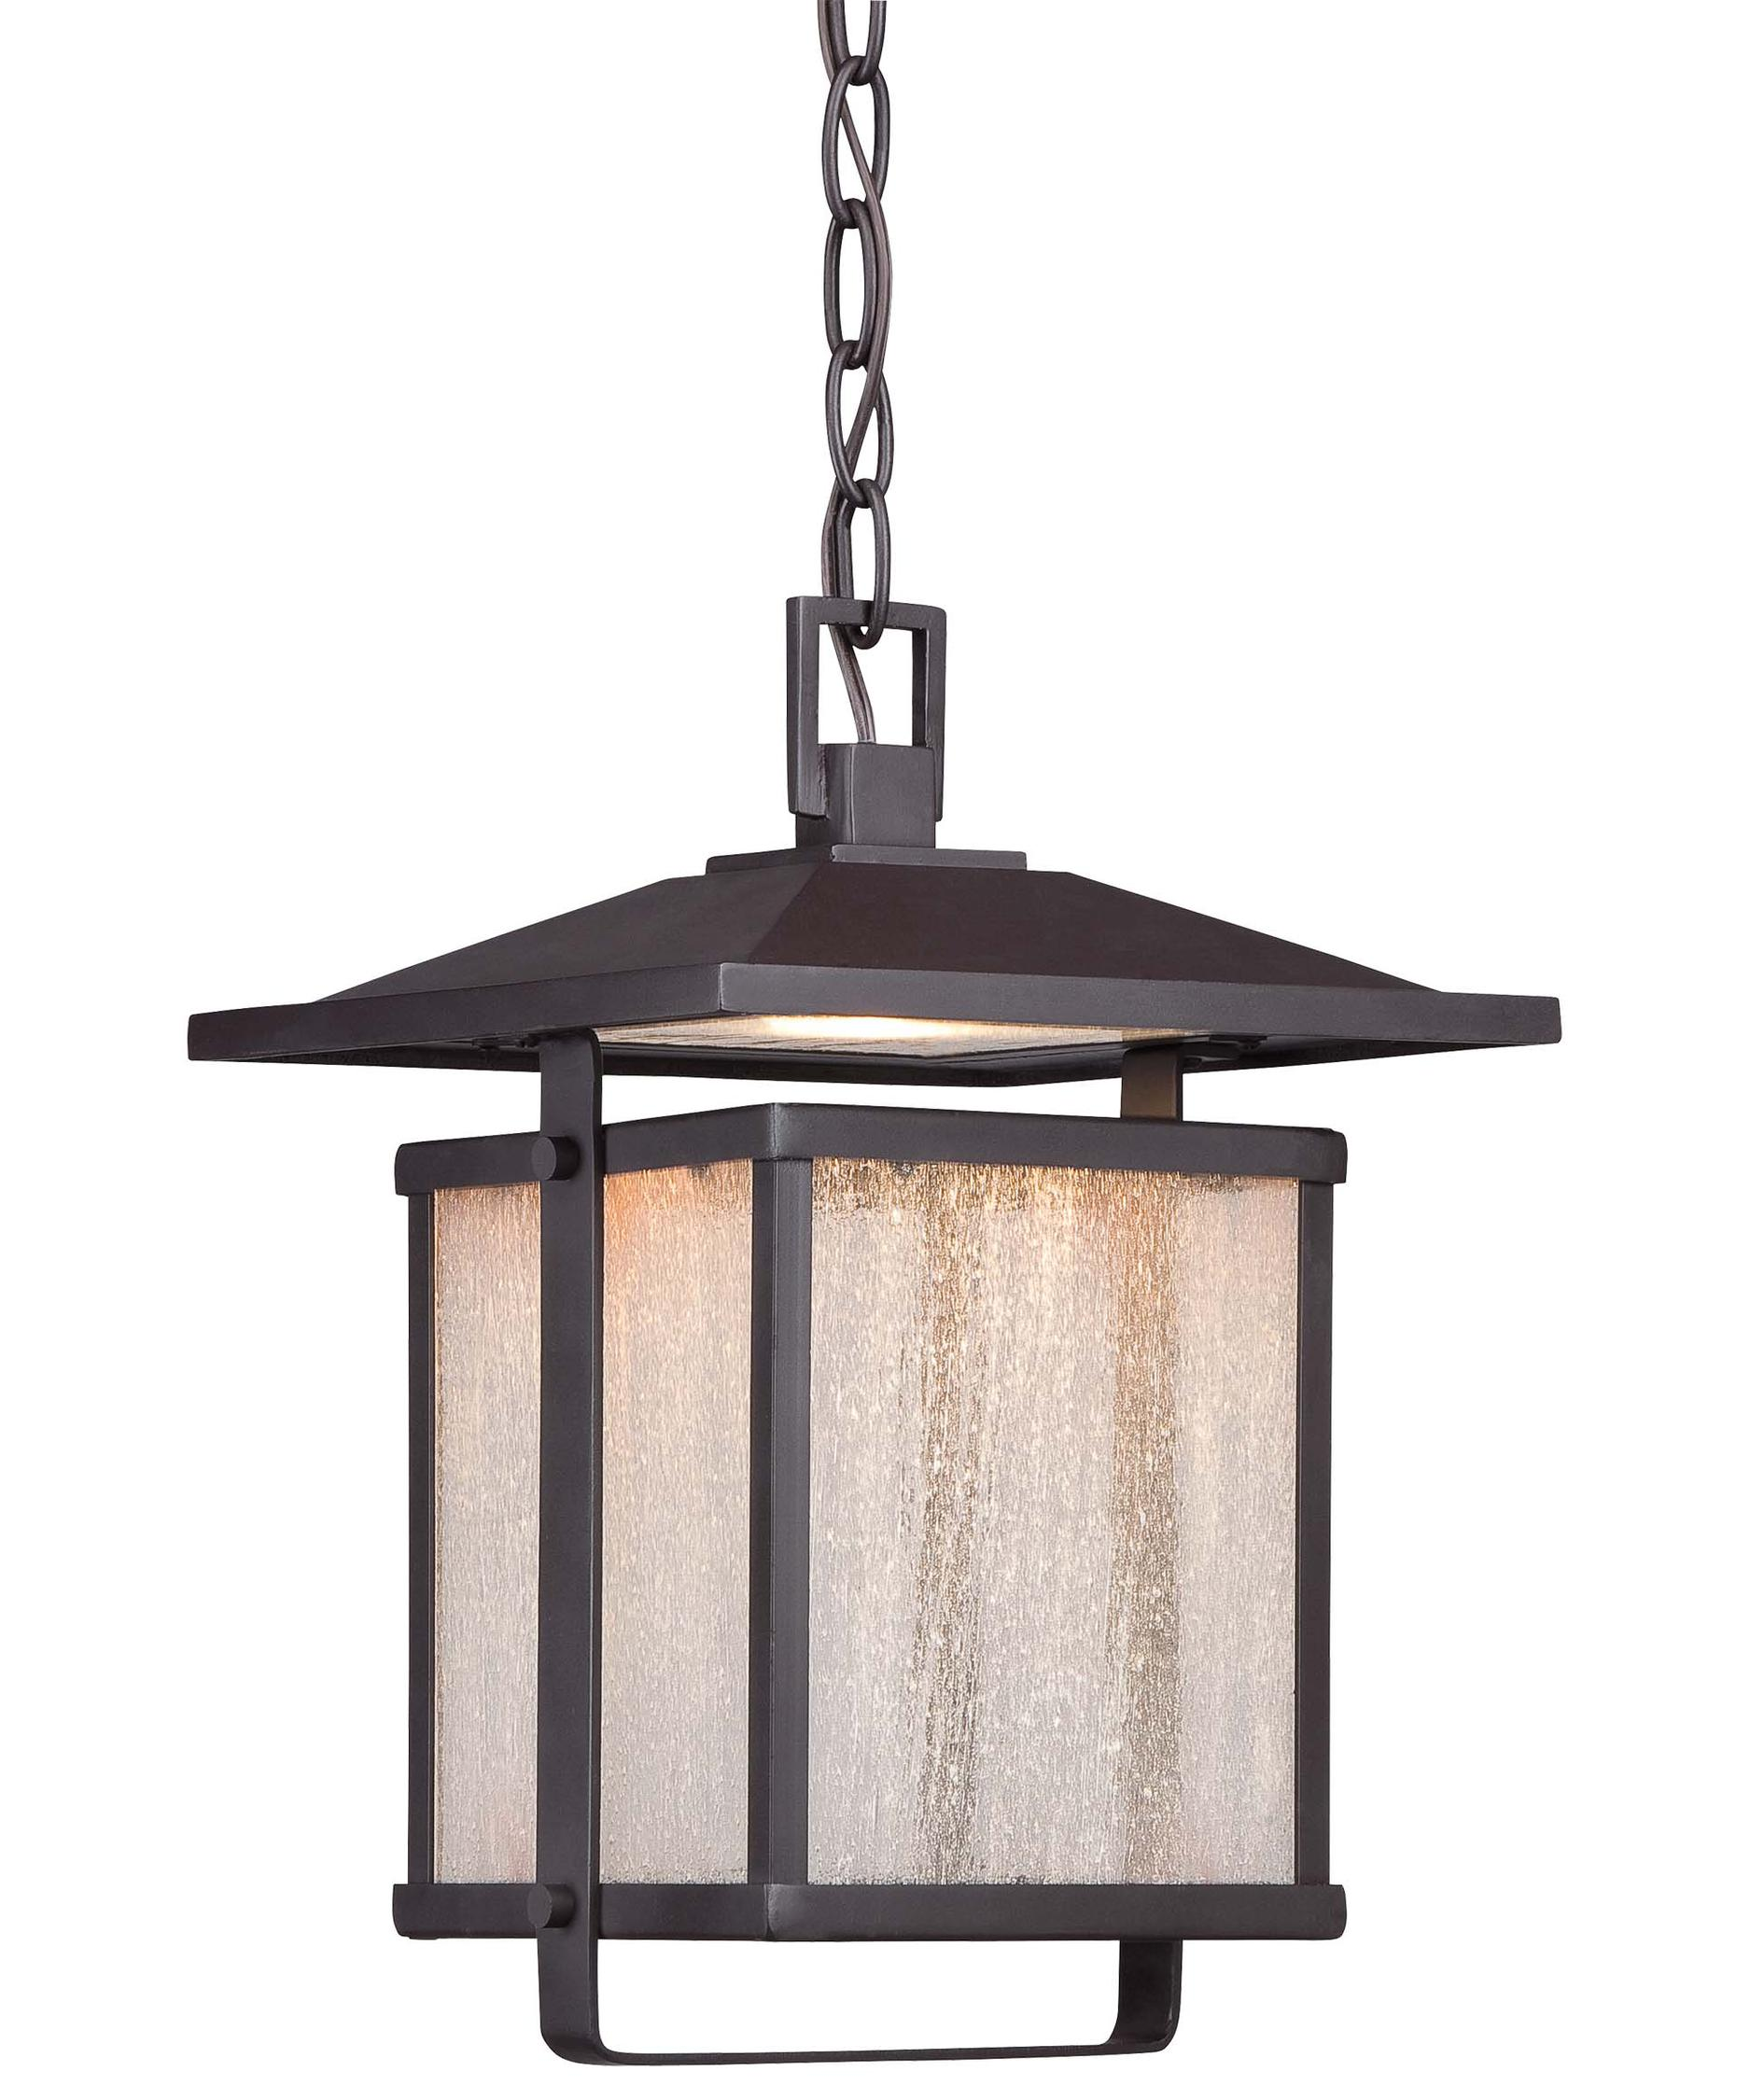 Outdoor hanging lighting - Shown In Dorian Bronze Finish And Clear Seeded Glass